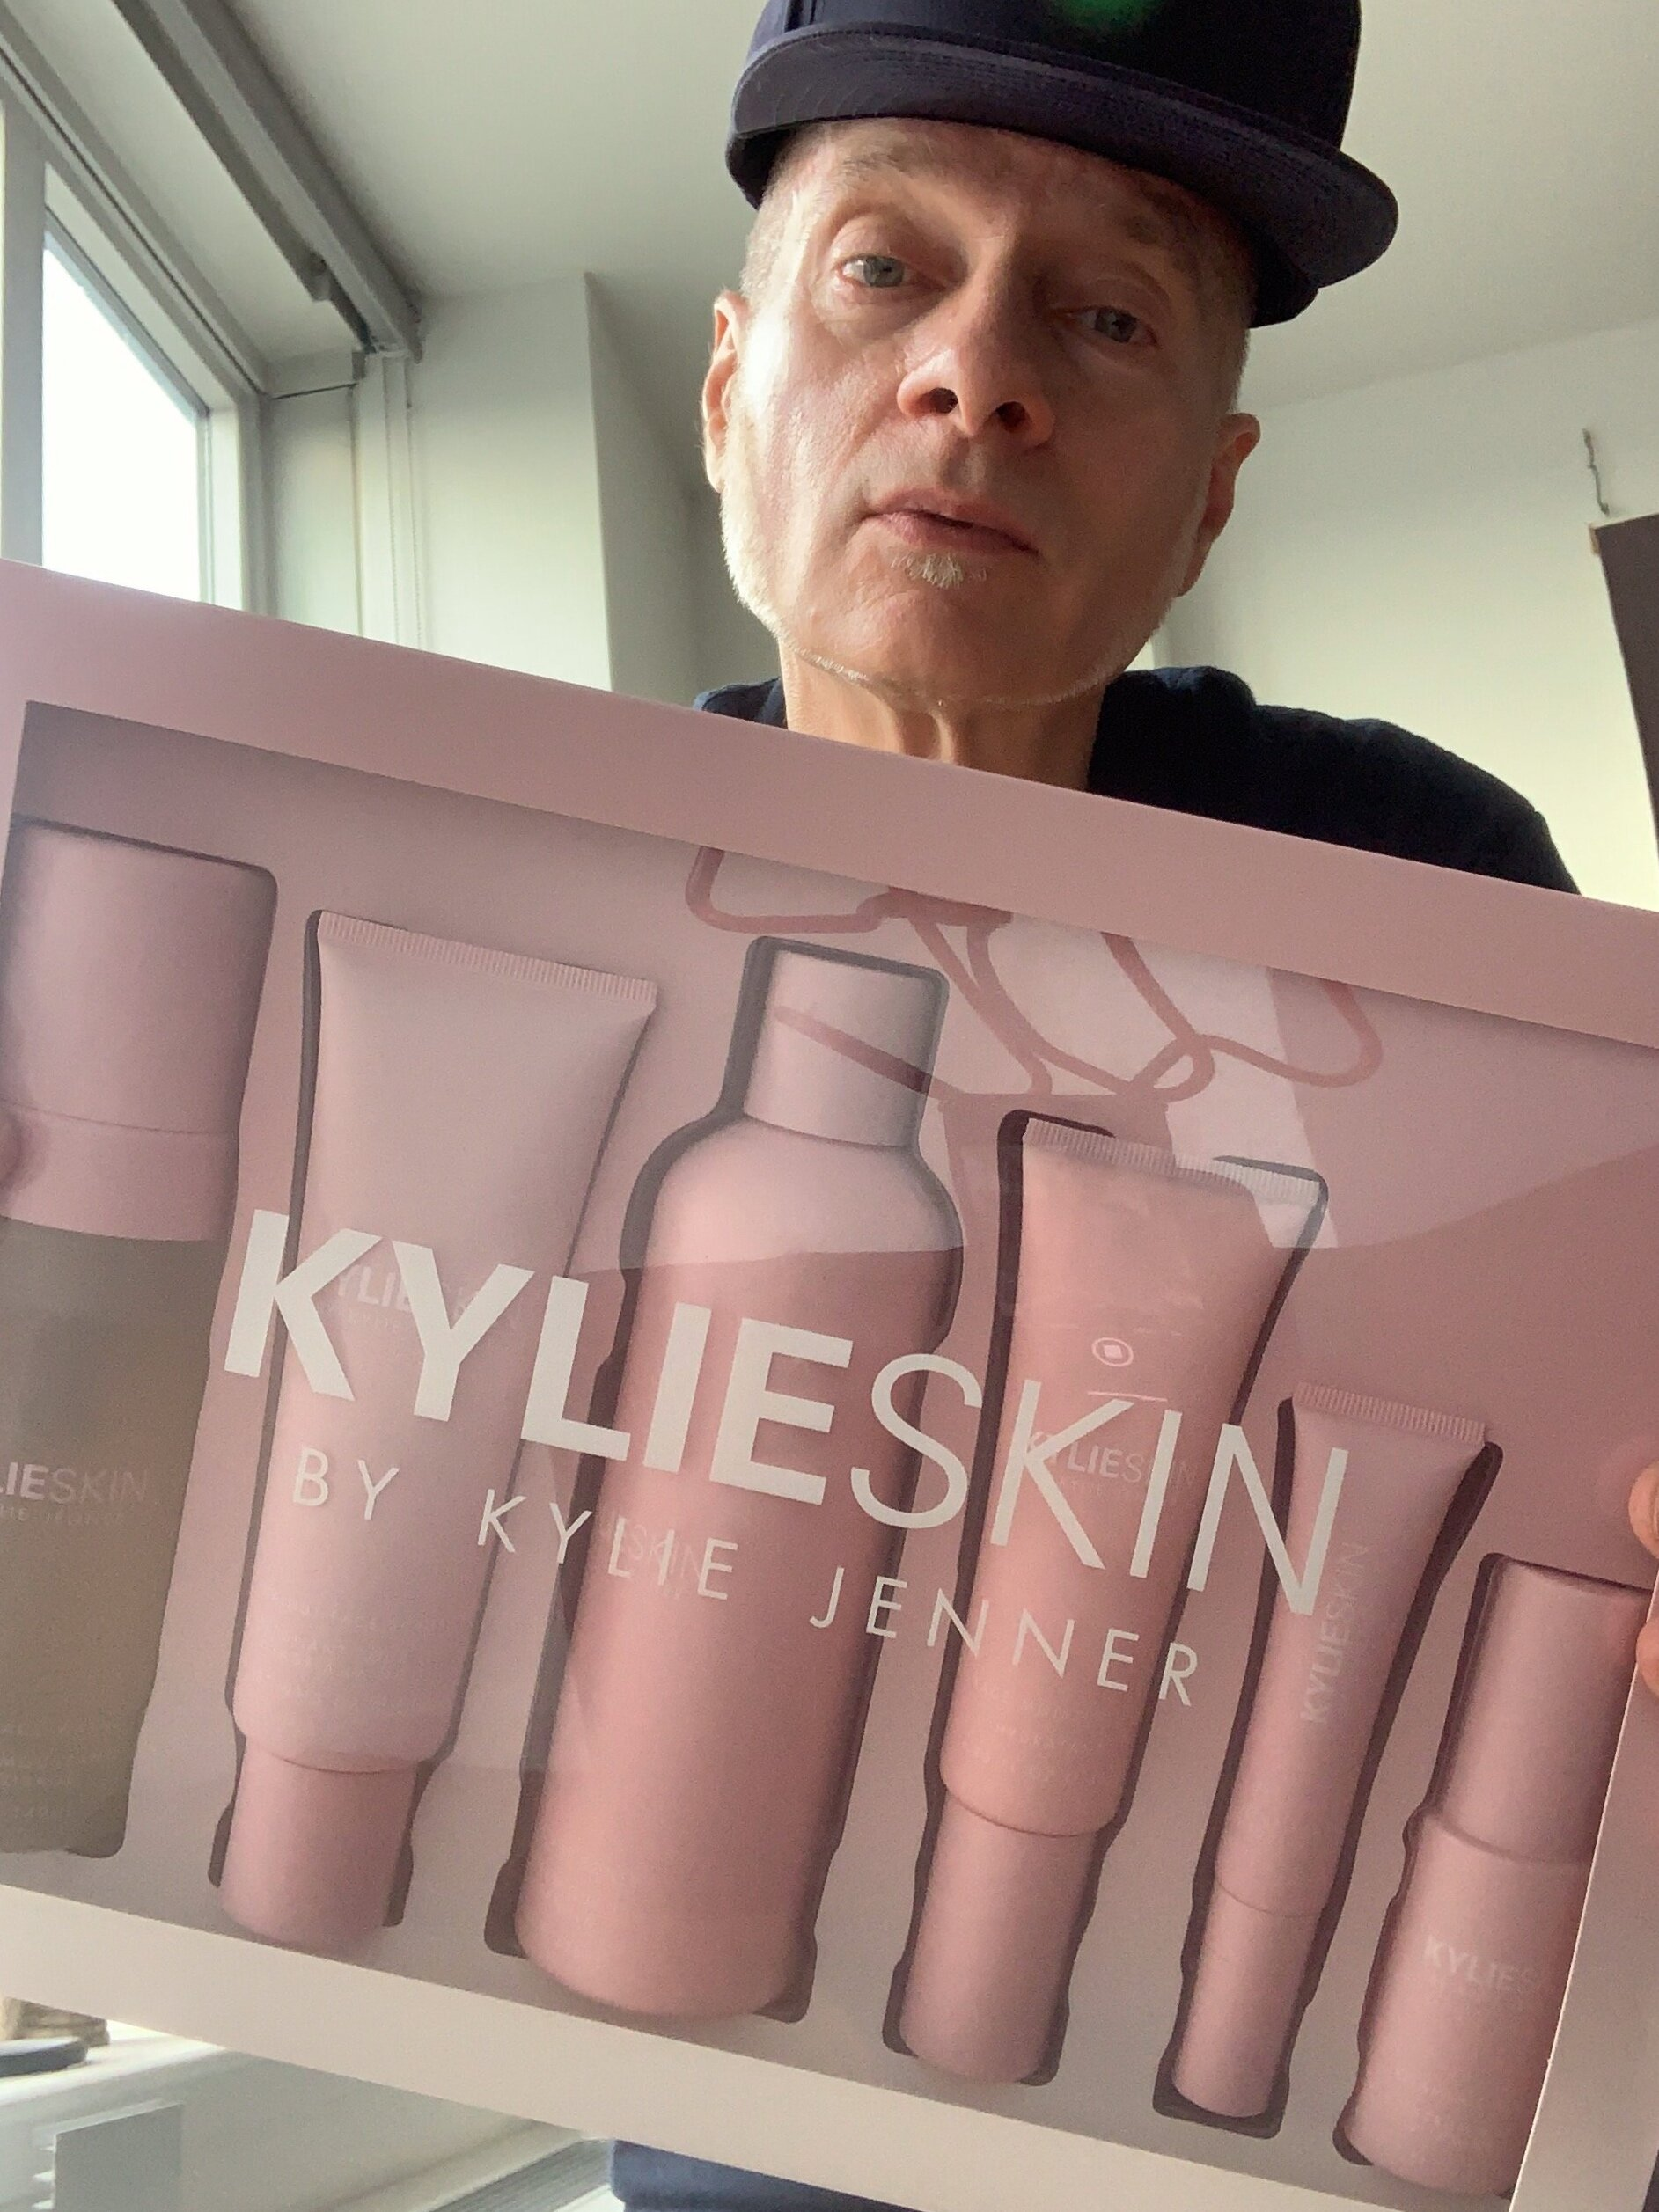 Look at this Kylie Skin product monstrosity that I just had to try for myself!